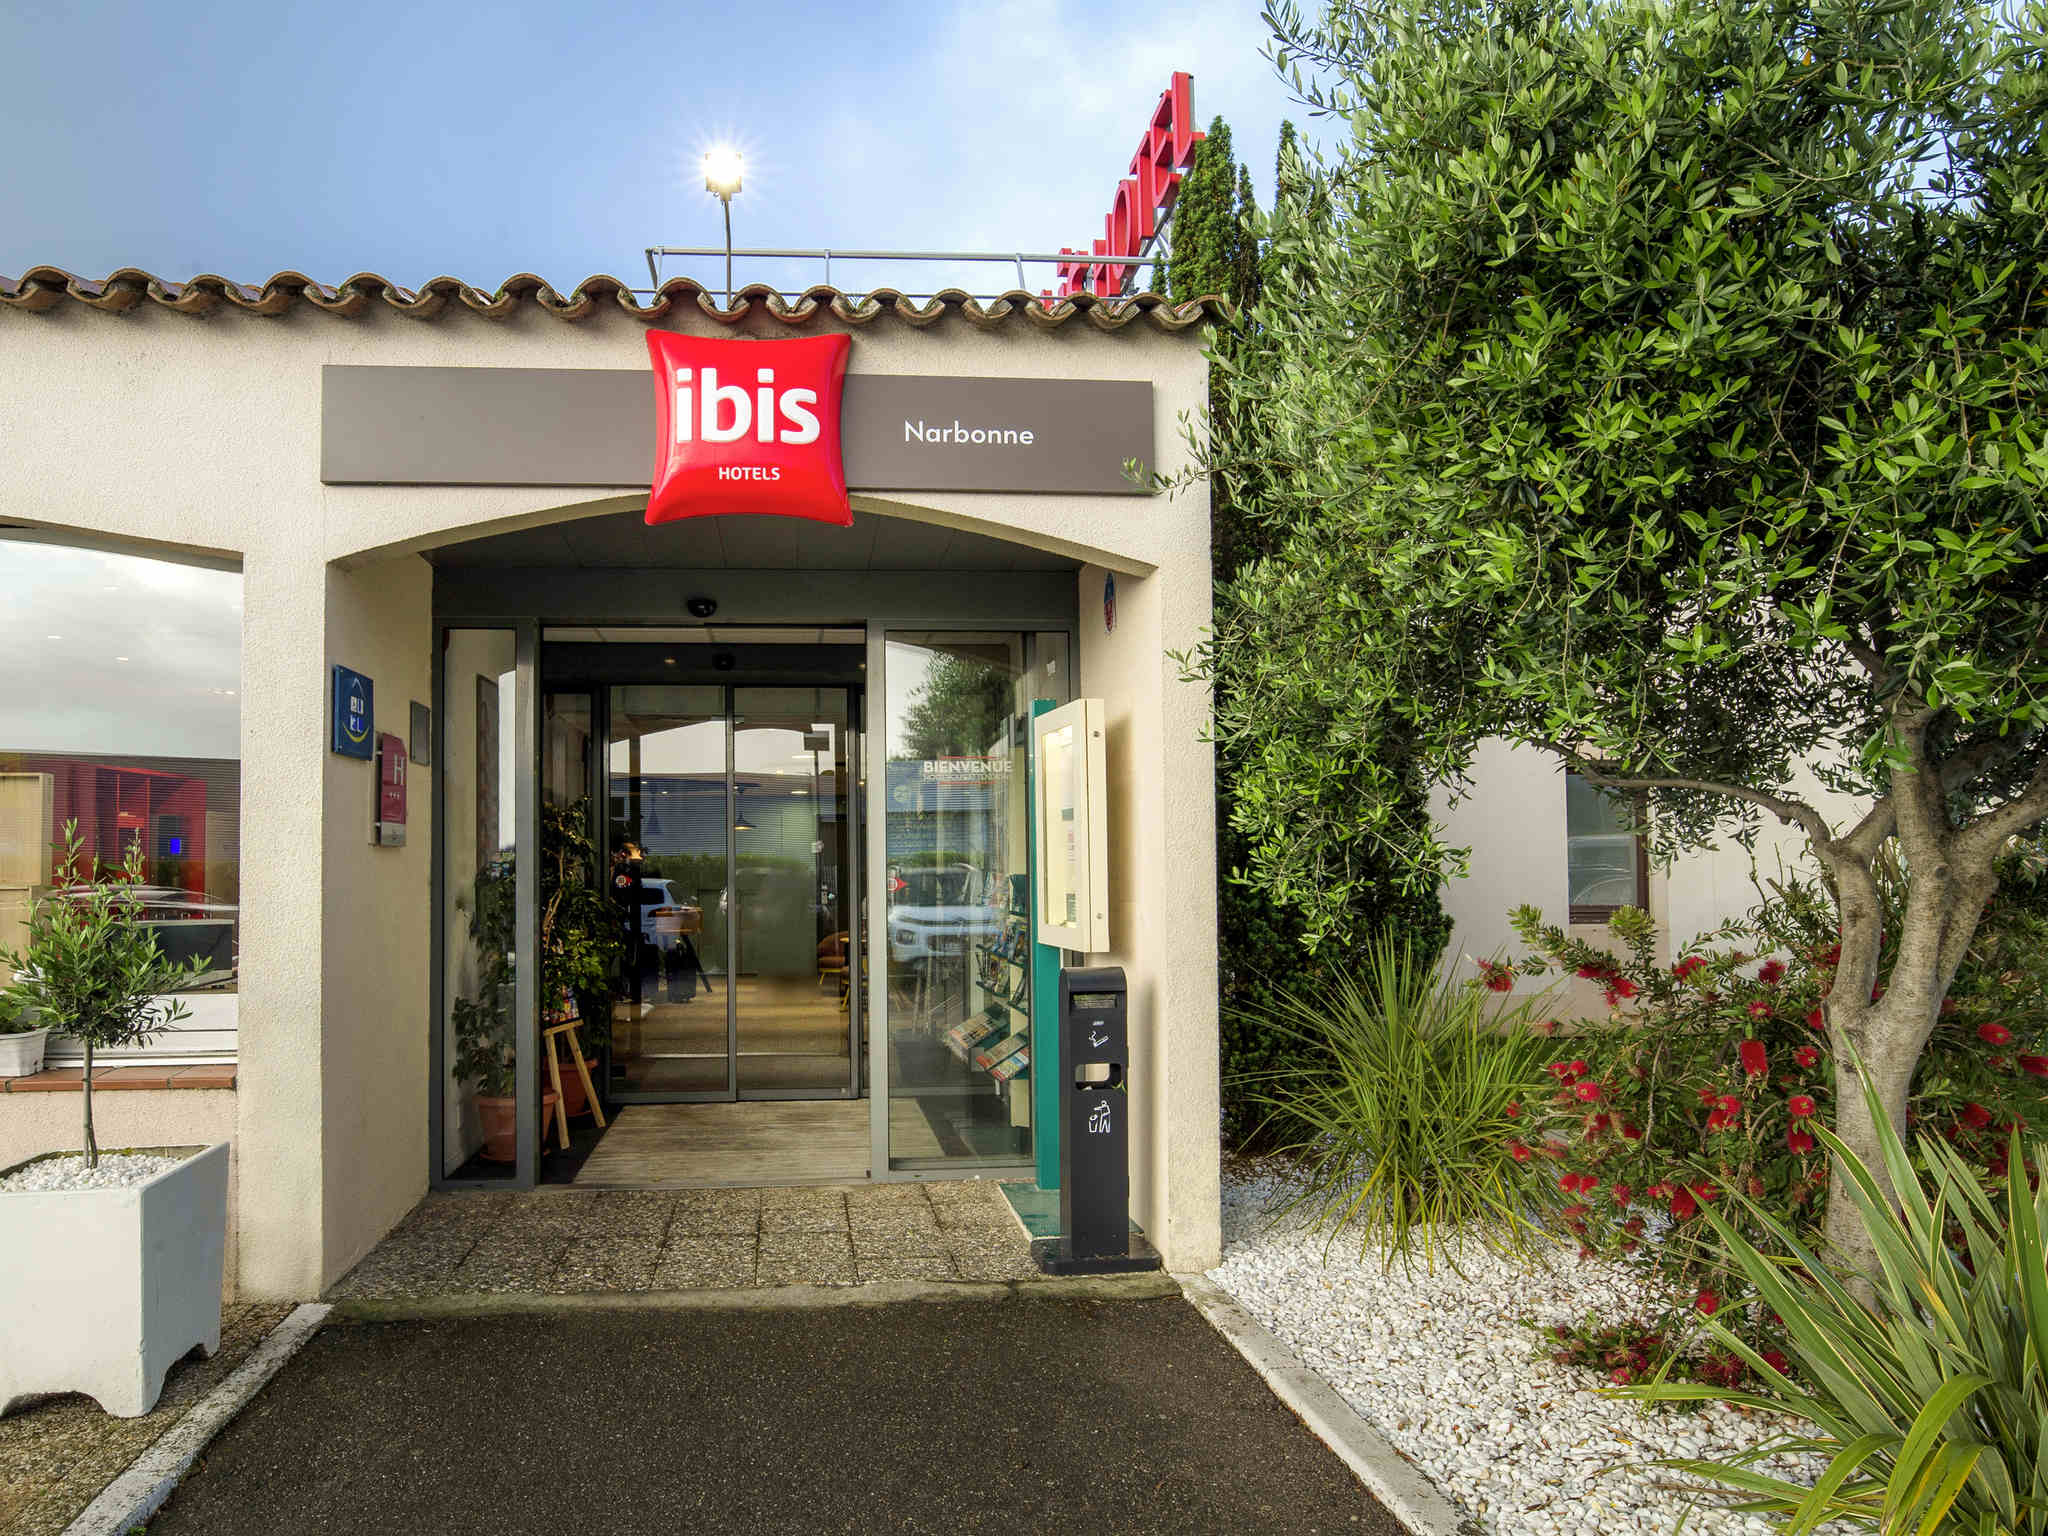 Hotel in narbonne ibis narbonne for Hotels ibis france